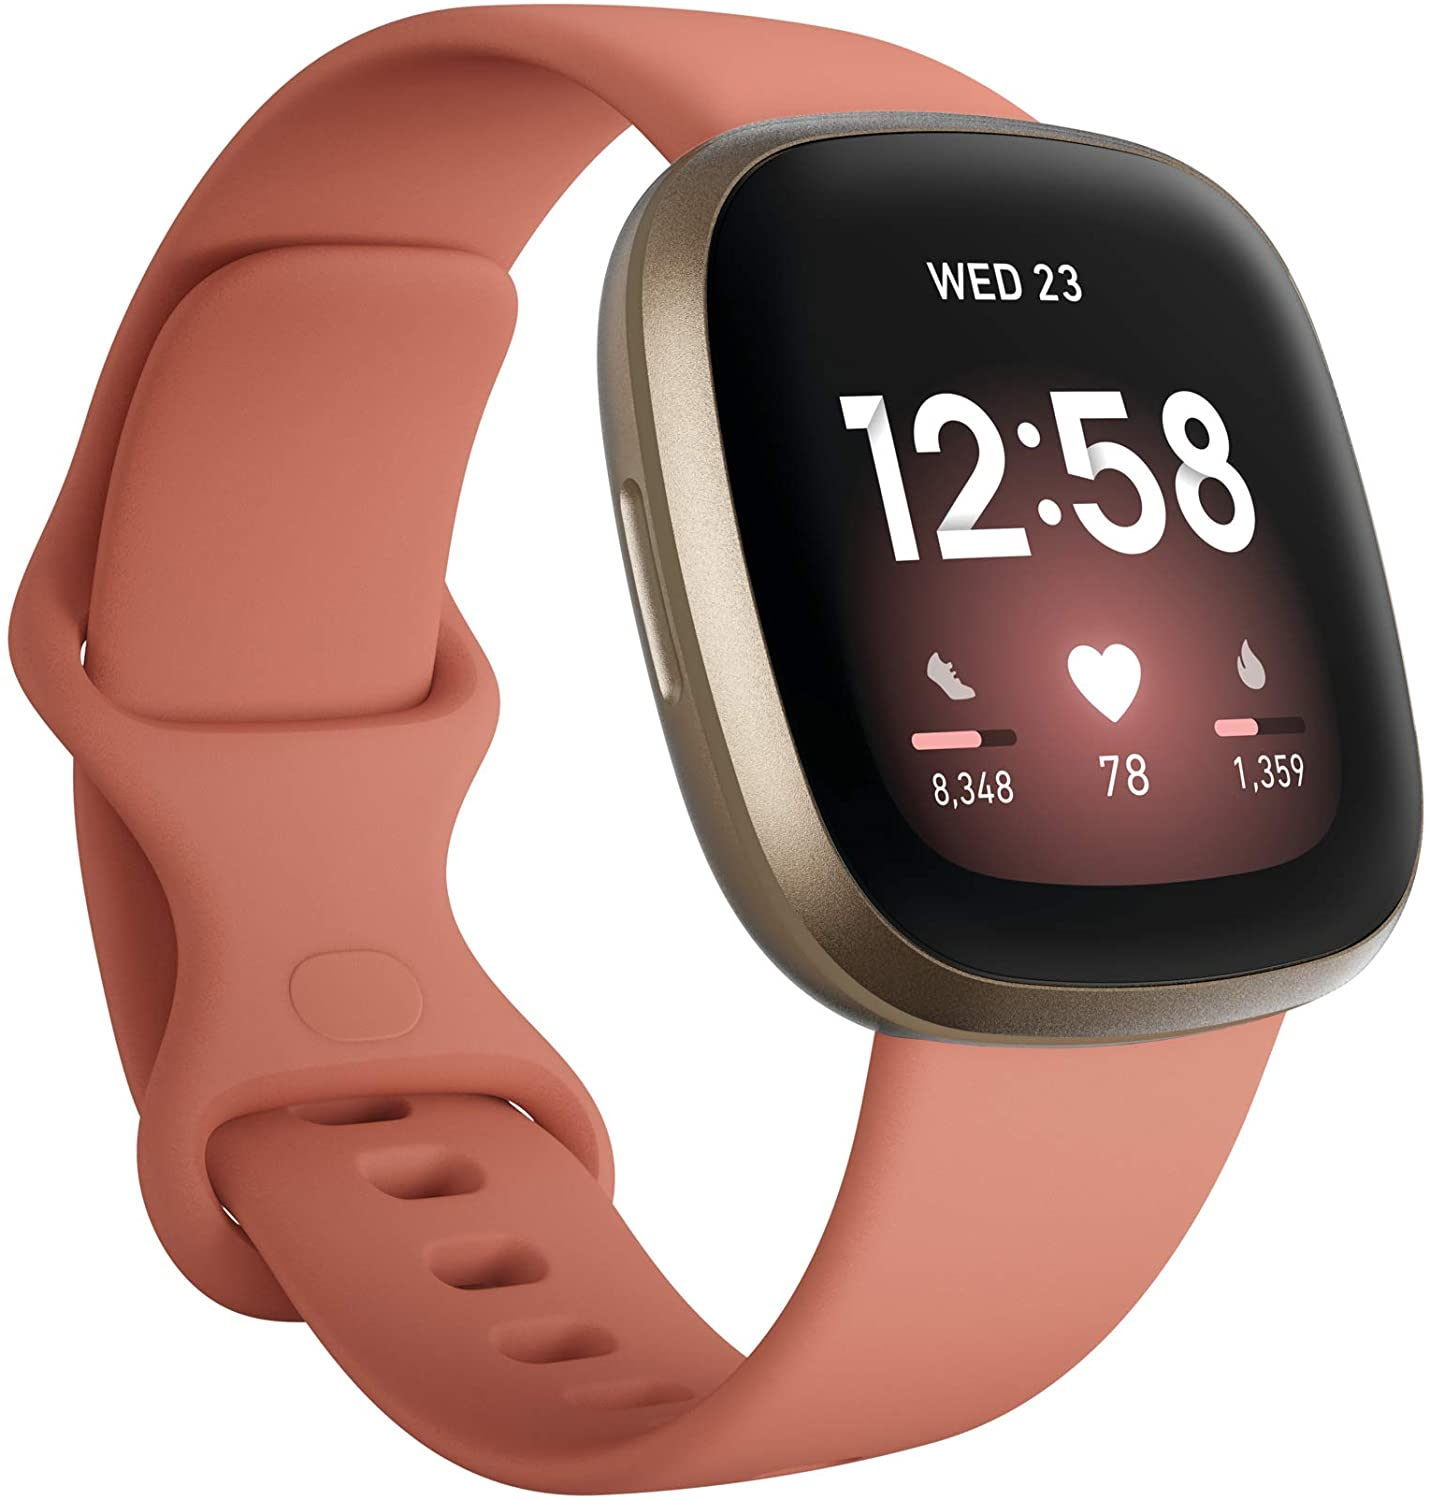 Fitbit Versa 3 Health & Fitness Smartwatch with GPS, 24/7 Heart Rate, Alexa Built-in, 6+ Days Battery, Pink/Gold, One Size (S & L Bands Included)